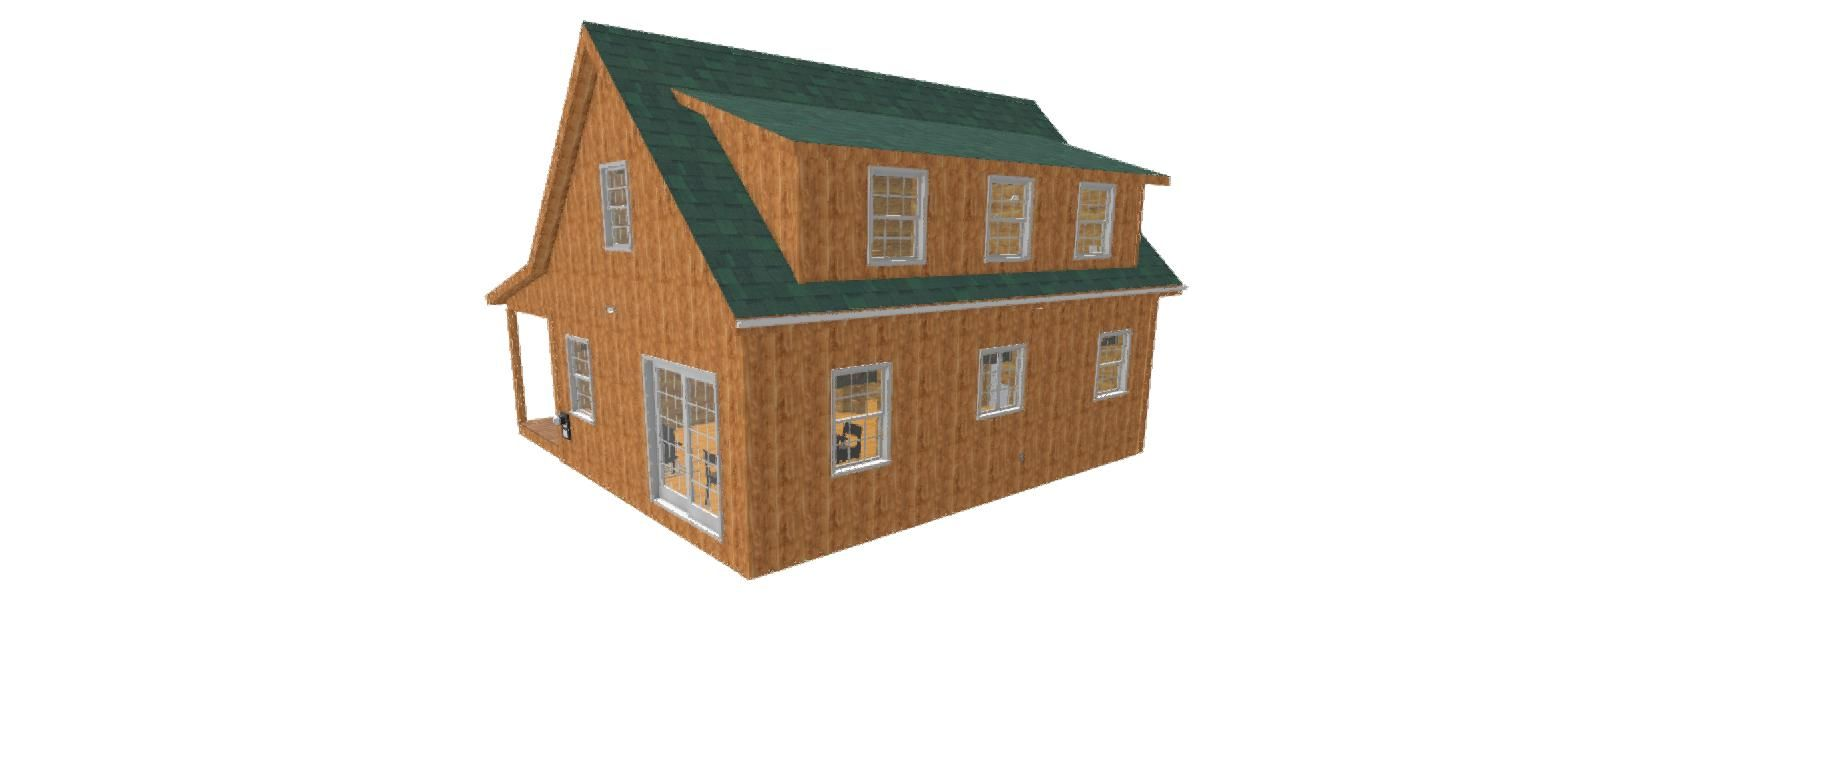 Adirondack Cabin Plans 18 X24 With Cozy Loft And Front Porch 1 5 Bath Cabin Cabin Plans Cabin Floor Plans